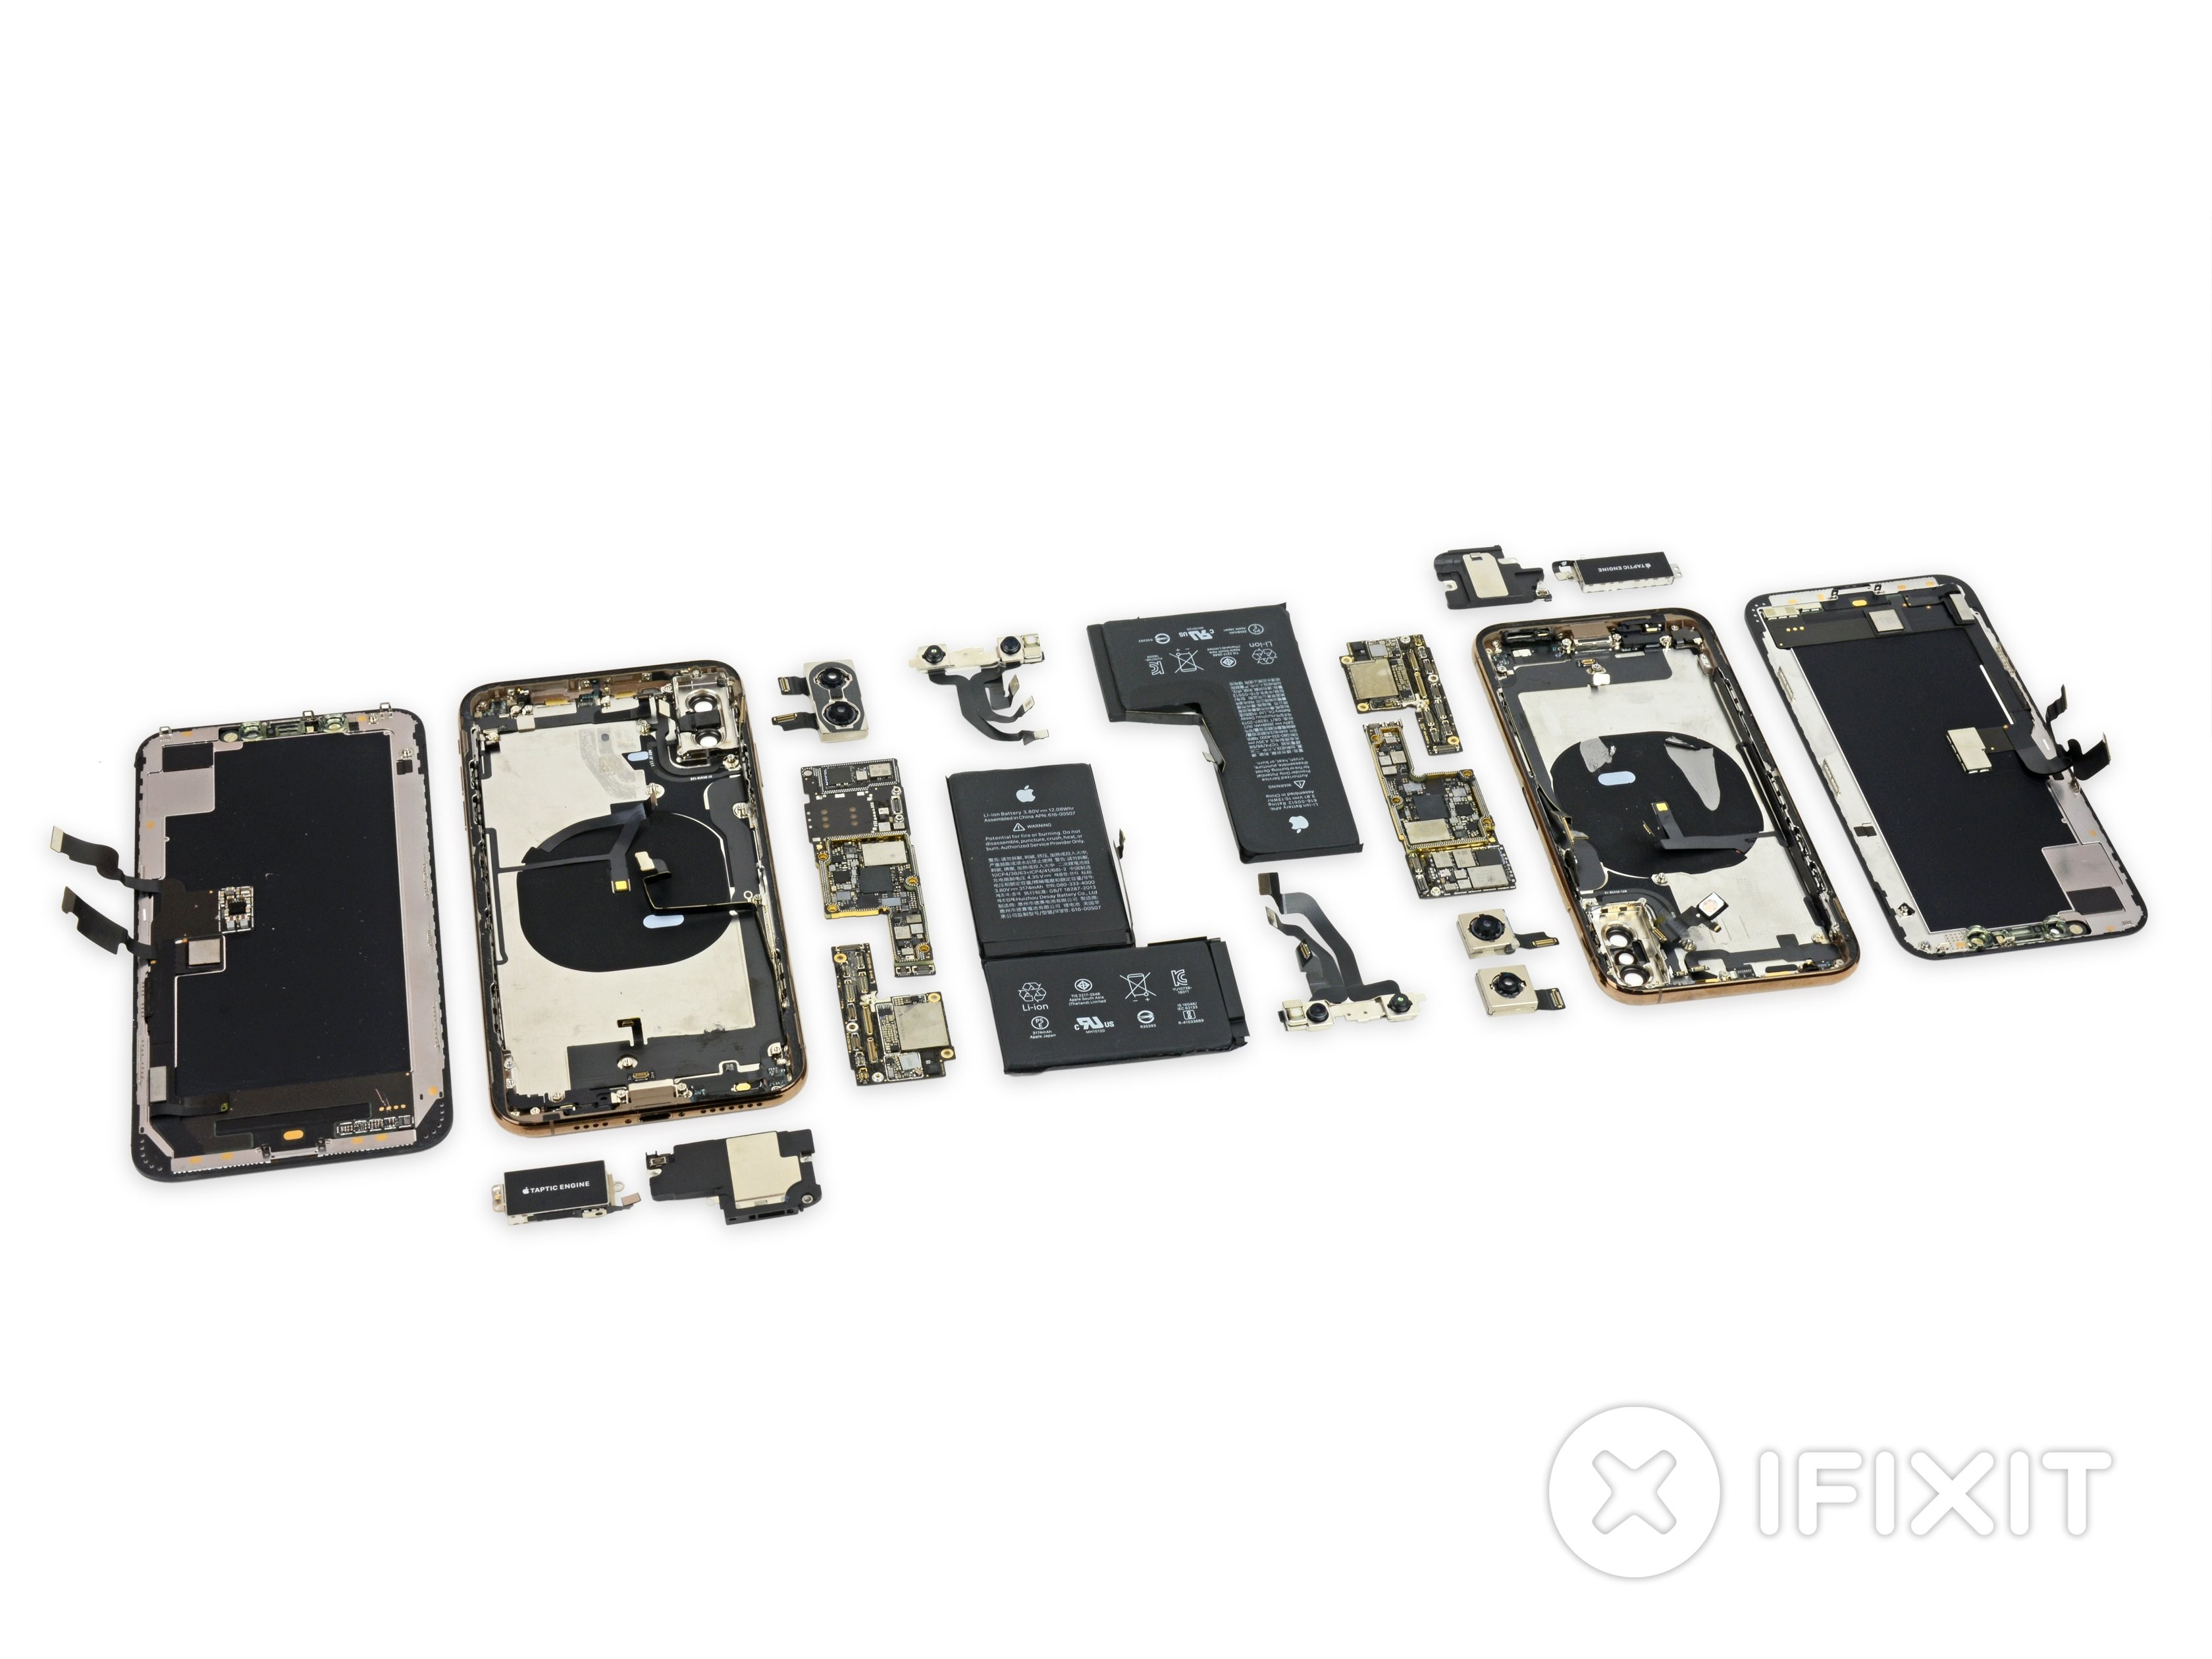 iPhone 5s Logic Board Schematic iPhone Xs and Xs Max Teardown ifixit Of iPhone 5s Logic Board Schematic